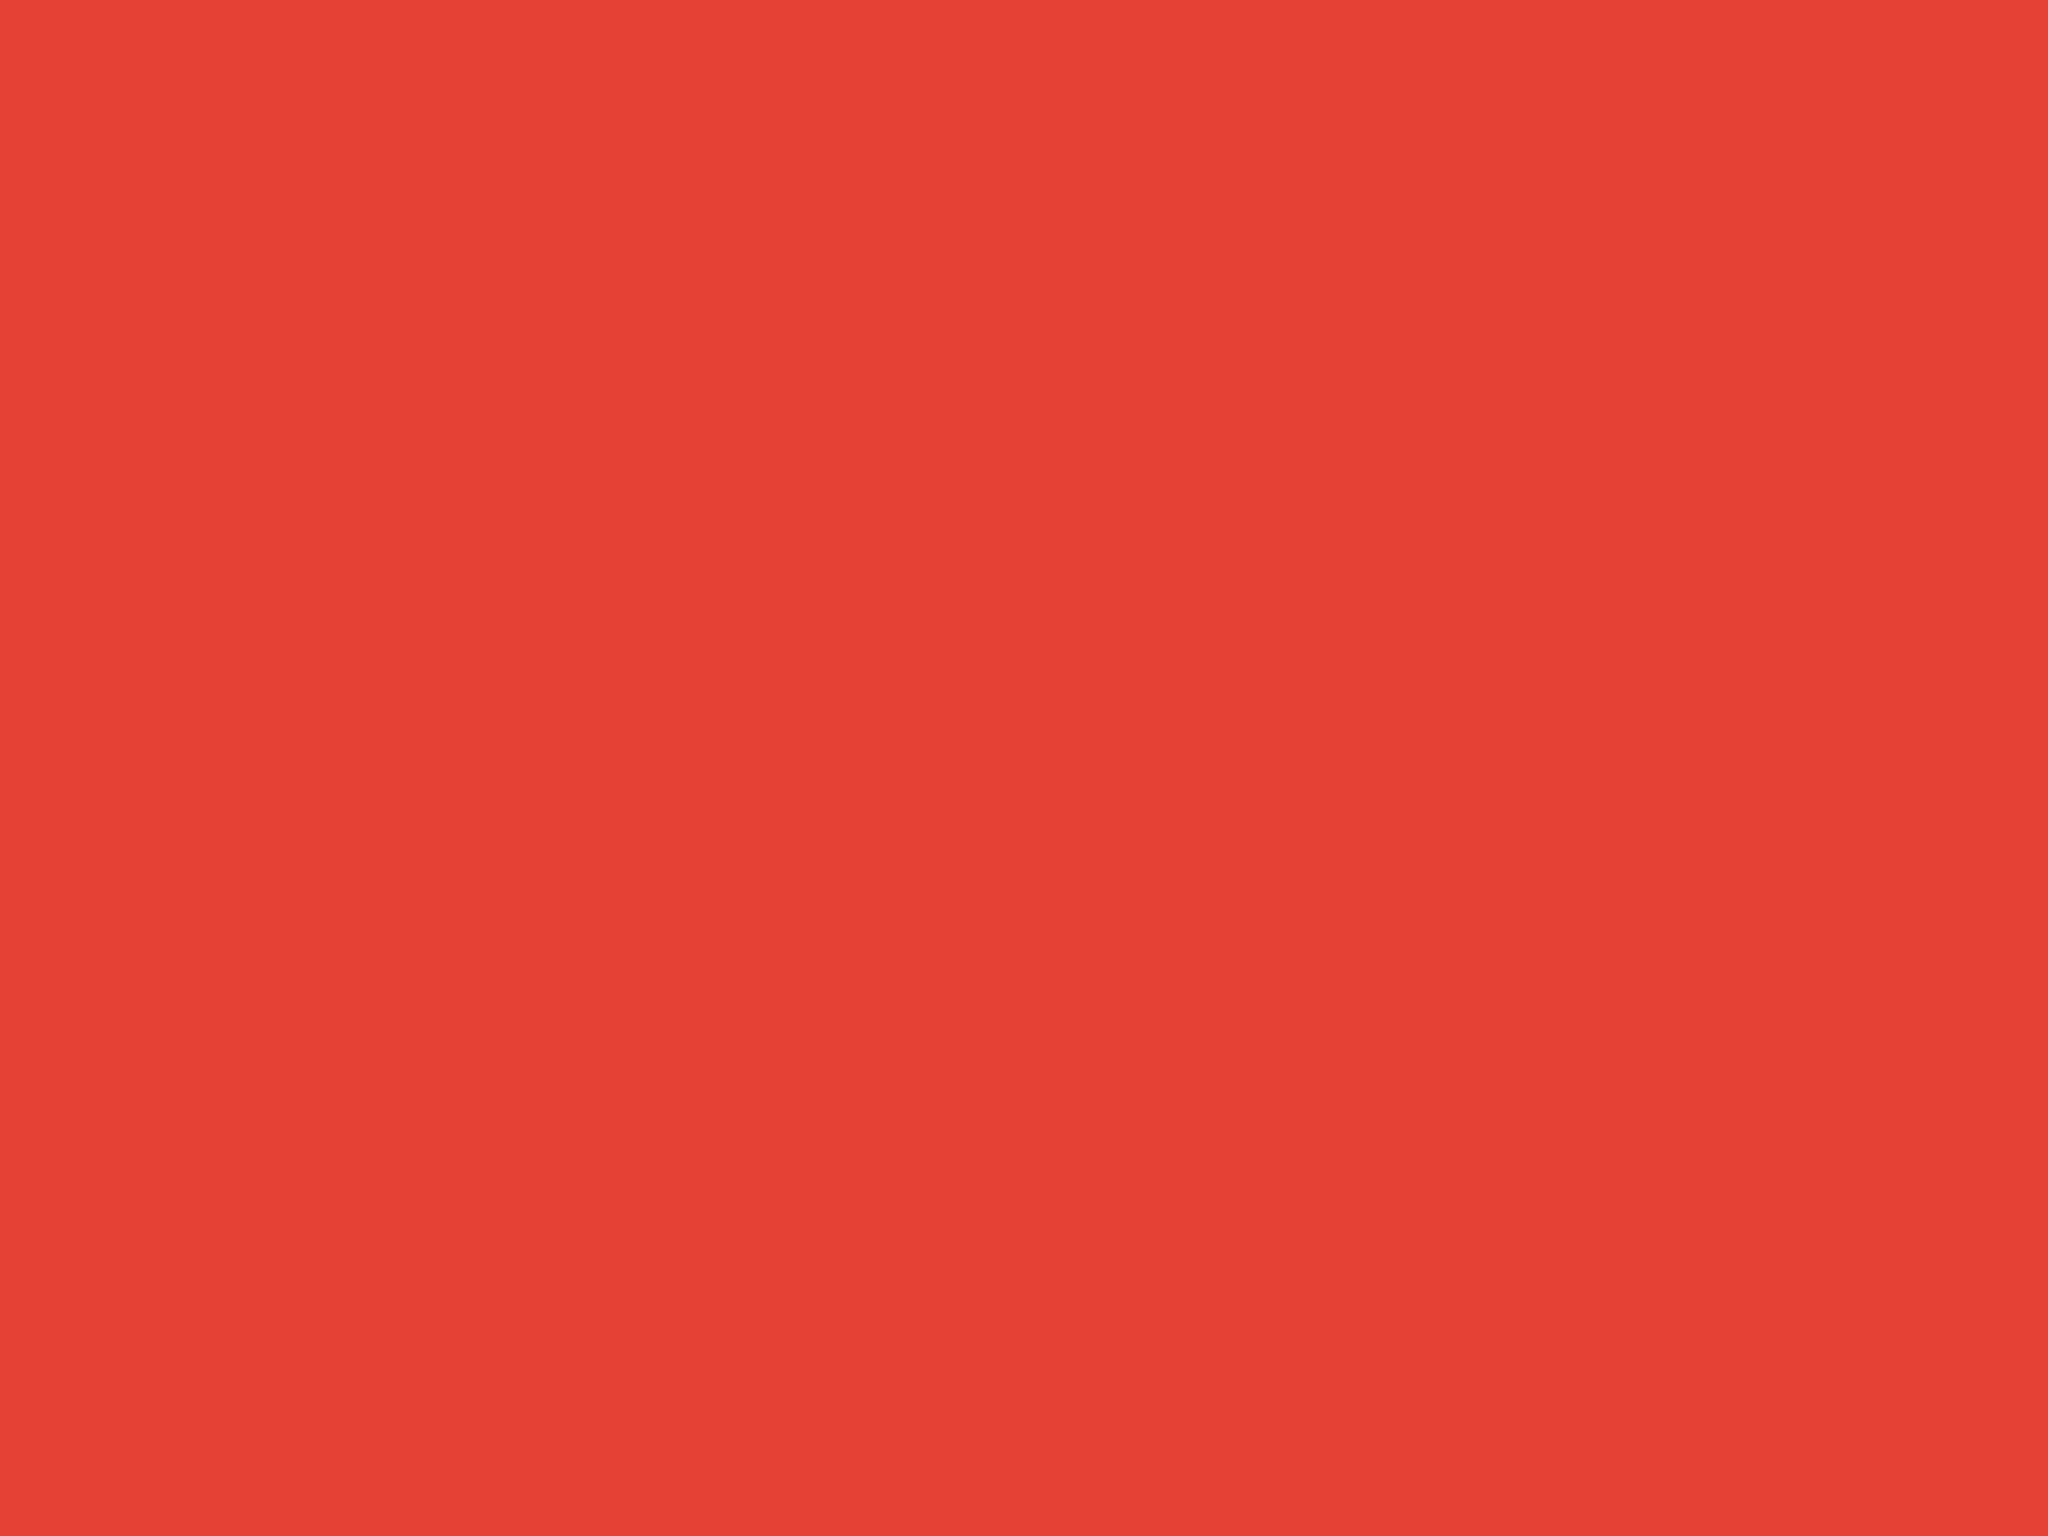 2048x1536 Cinnabar Solid Color Background